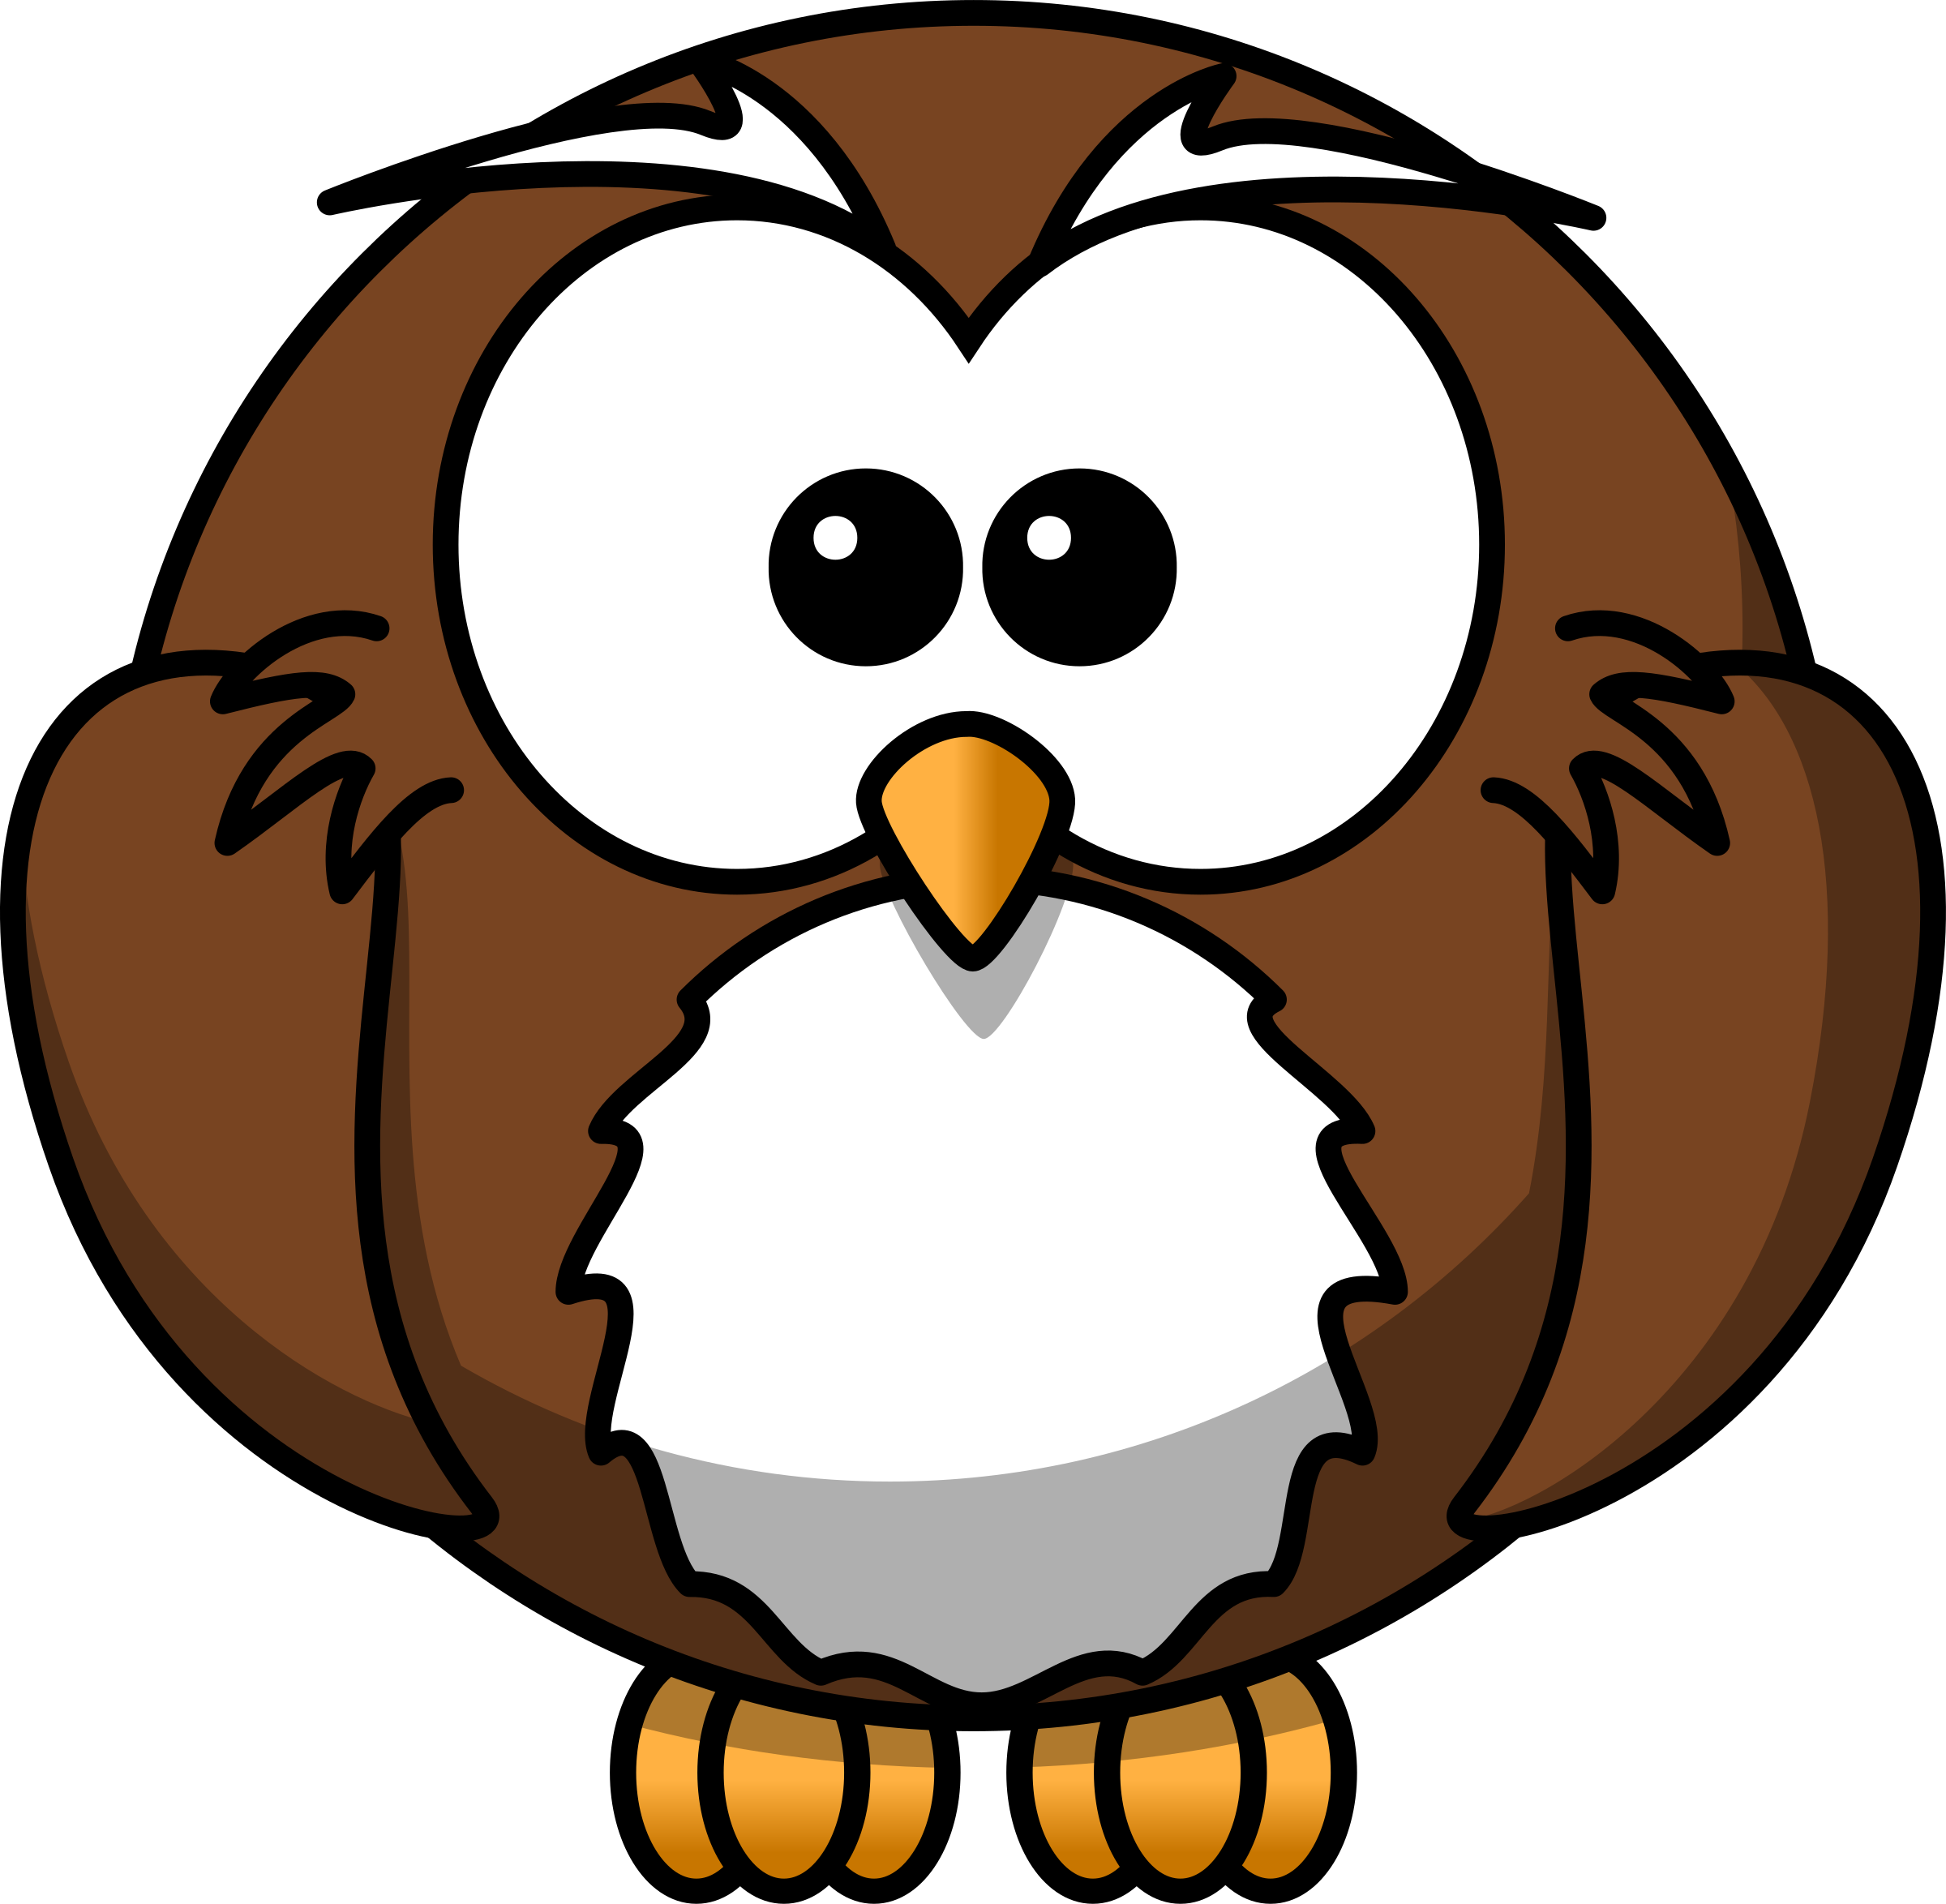 Turkey clipart 1080px image transparent download Download Owl Cartoon Pic Stock Photos Royalty #4065 - Unknown ... image transparent download